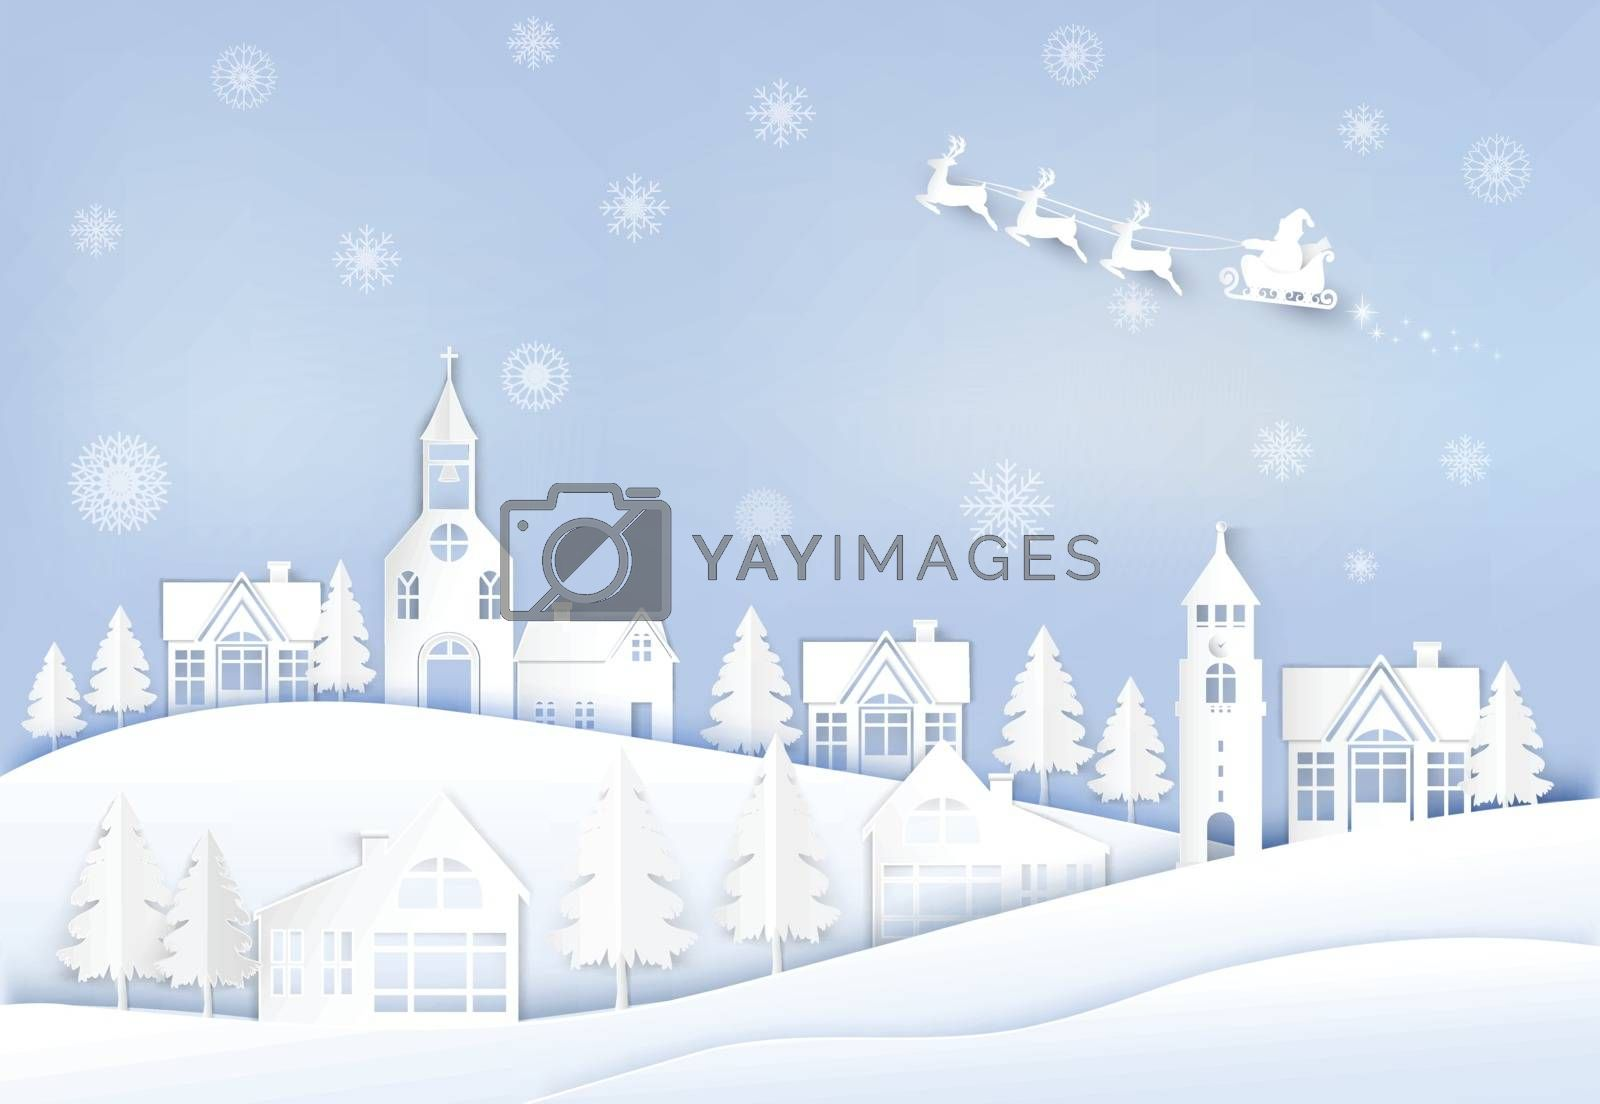 Winter holiday Santa and deer with snowflake background. Christmas season paper art style illustration.